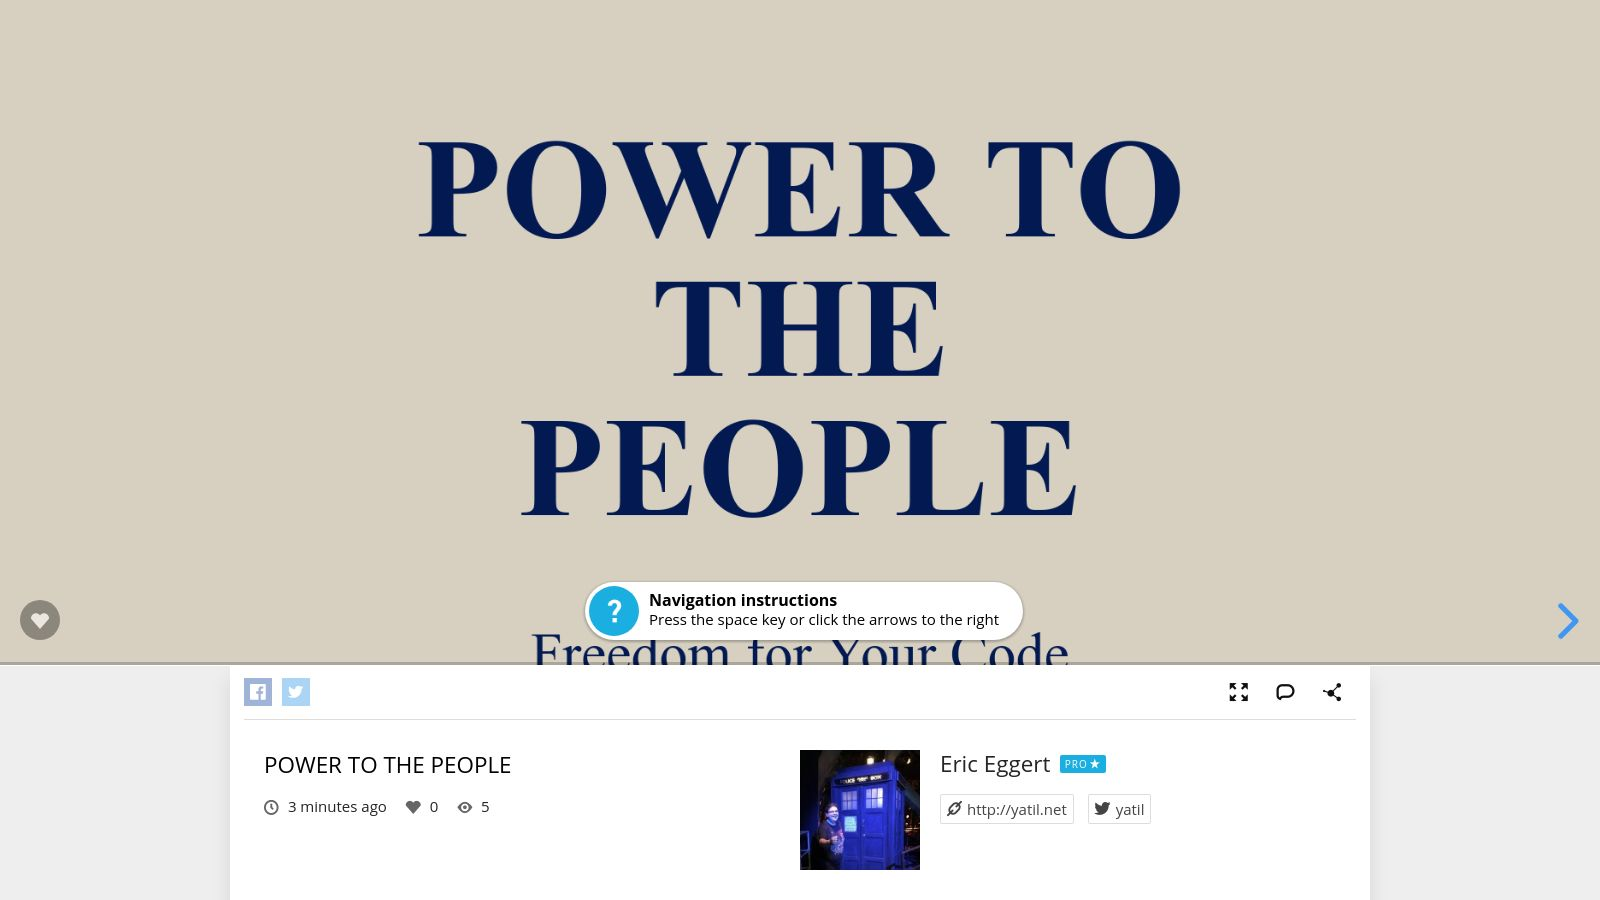 Power to the people, freedom for your code